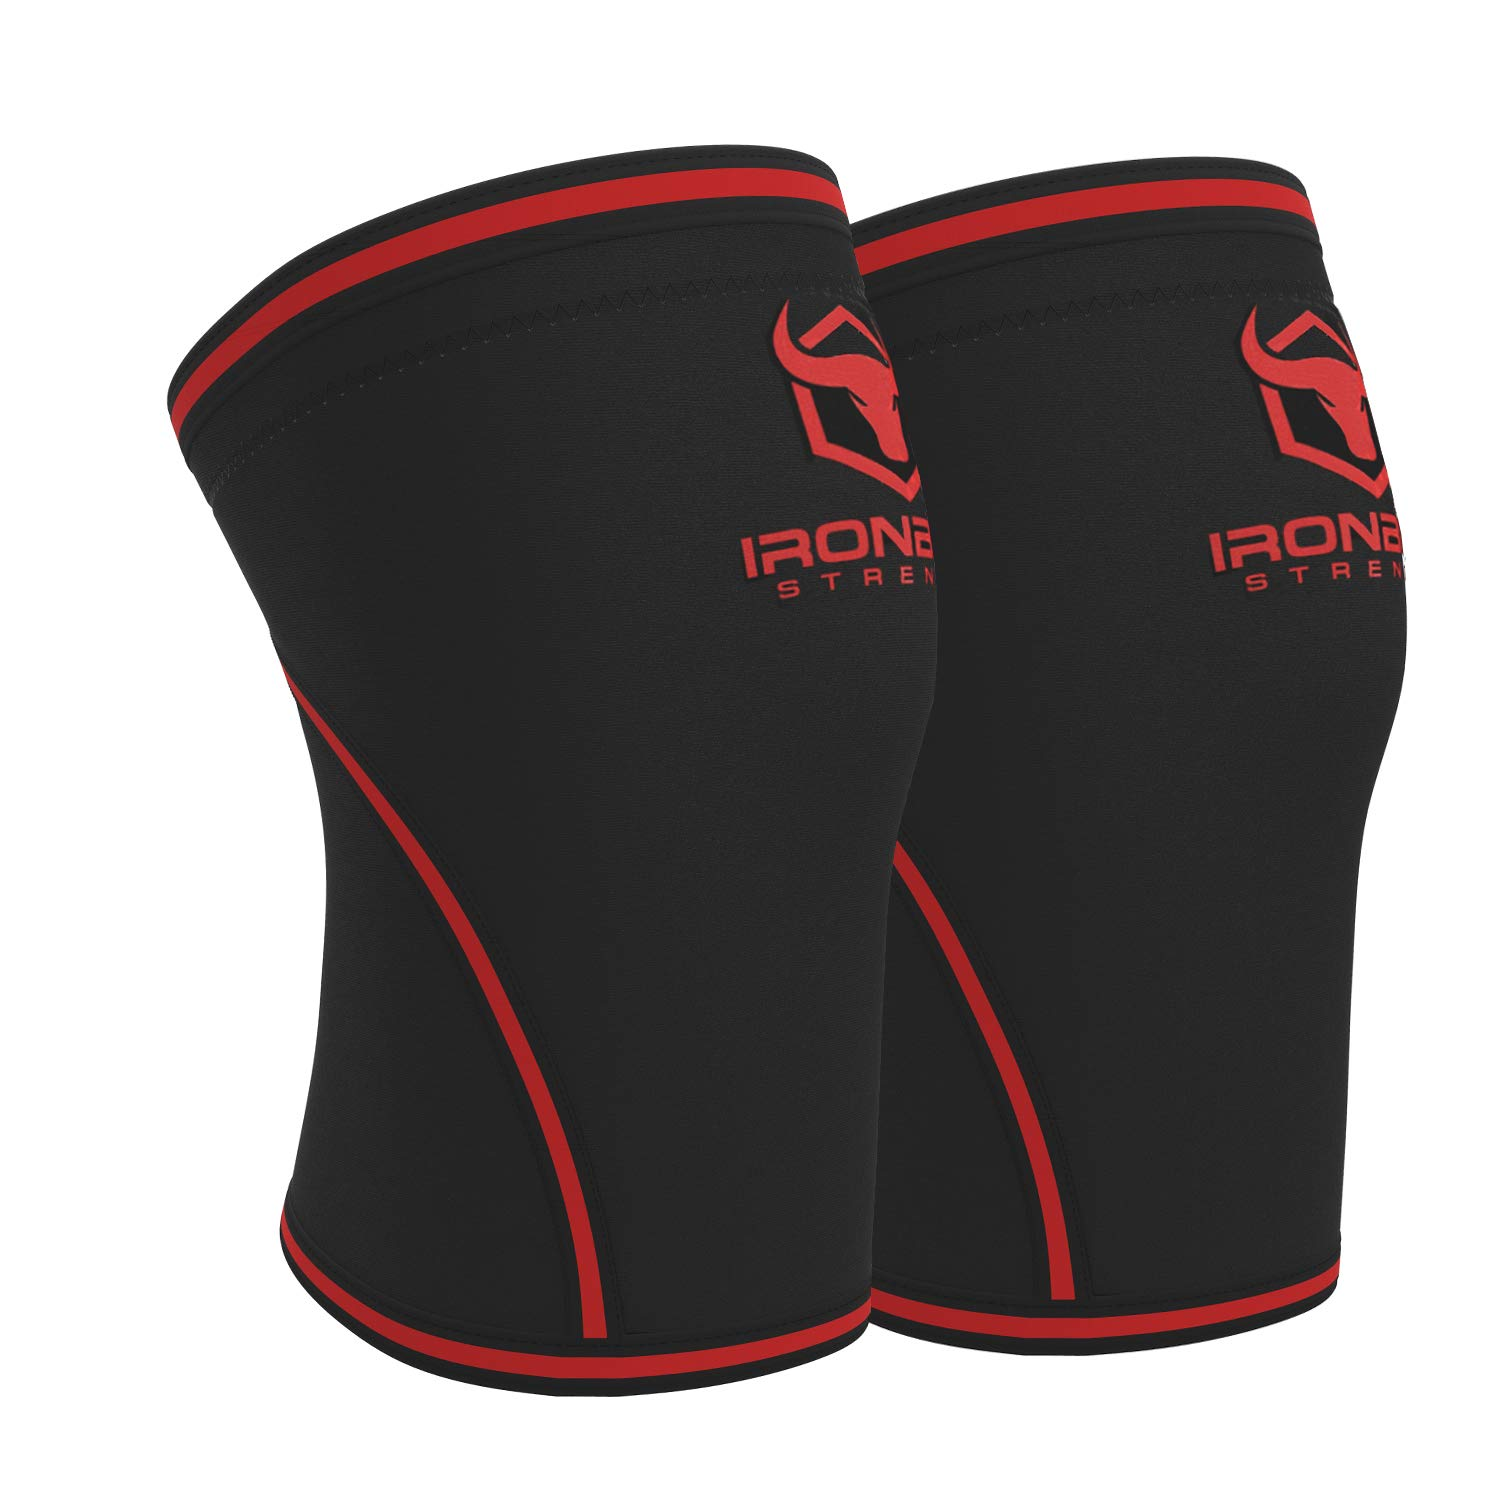 Knee Sleeves 7mm (1 Pair) - High Performance Knee Sleeve Support for Weight Lifting, Cross Training & Powerlifting - Best Knee Wraps & Straps Compression - for Men and Women (Black/Red, Medium) by Iron Bull Strength